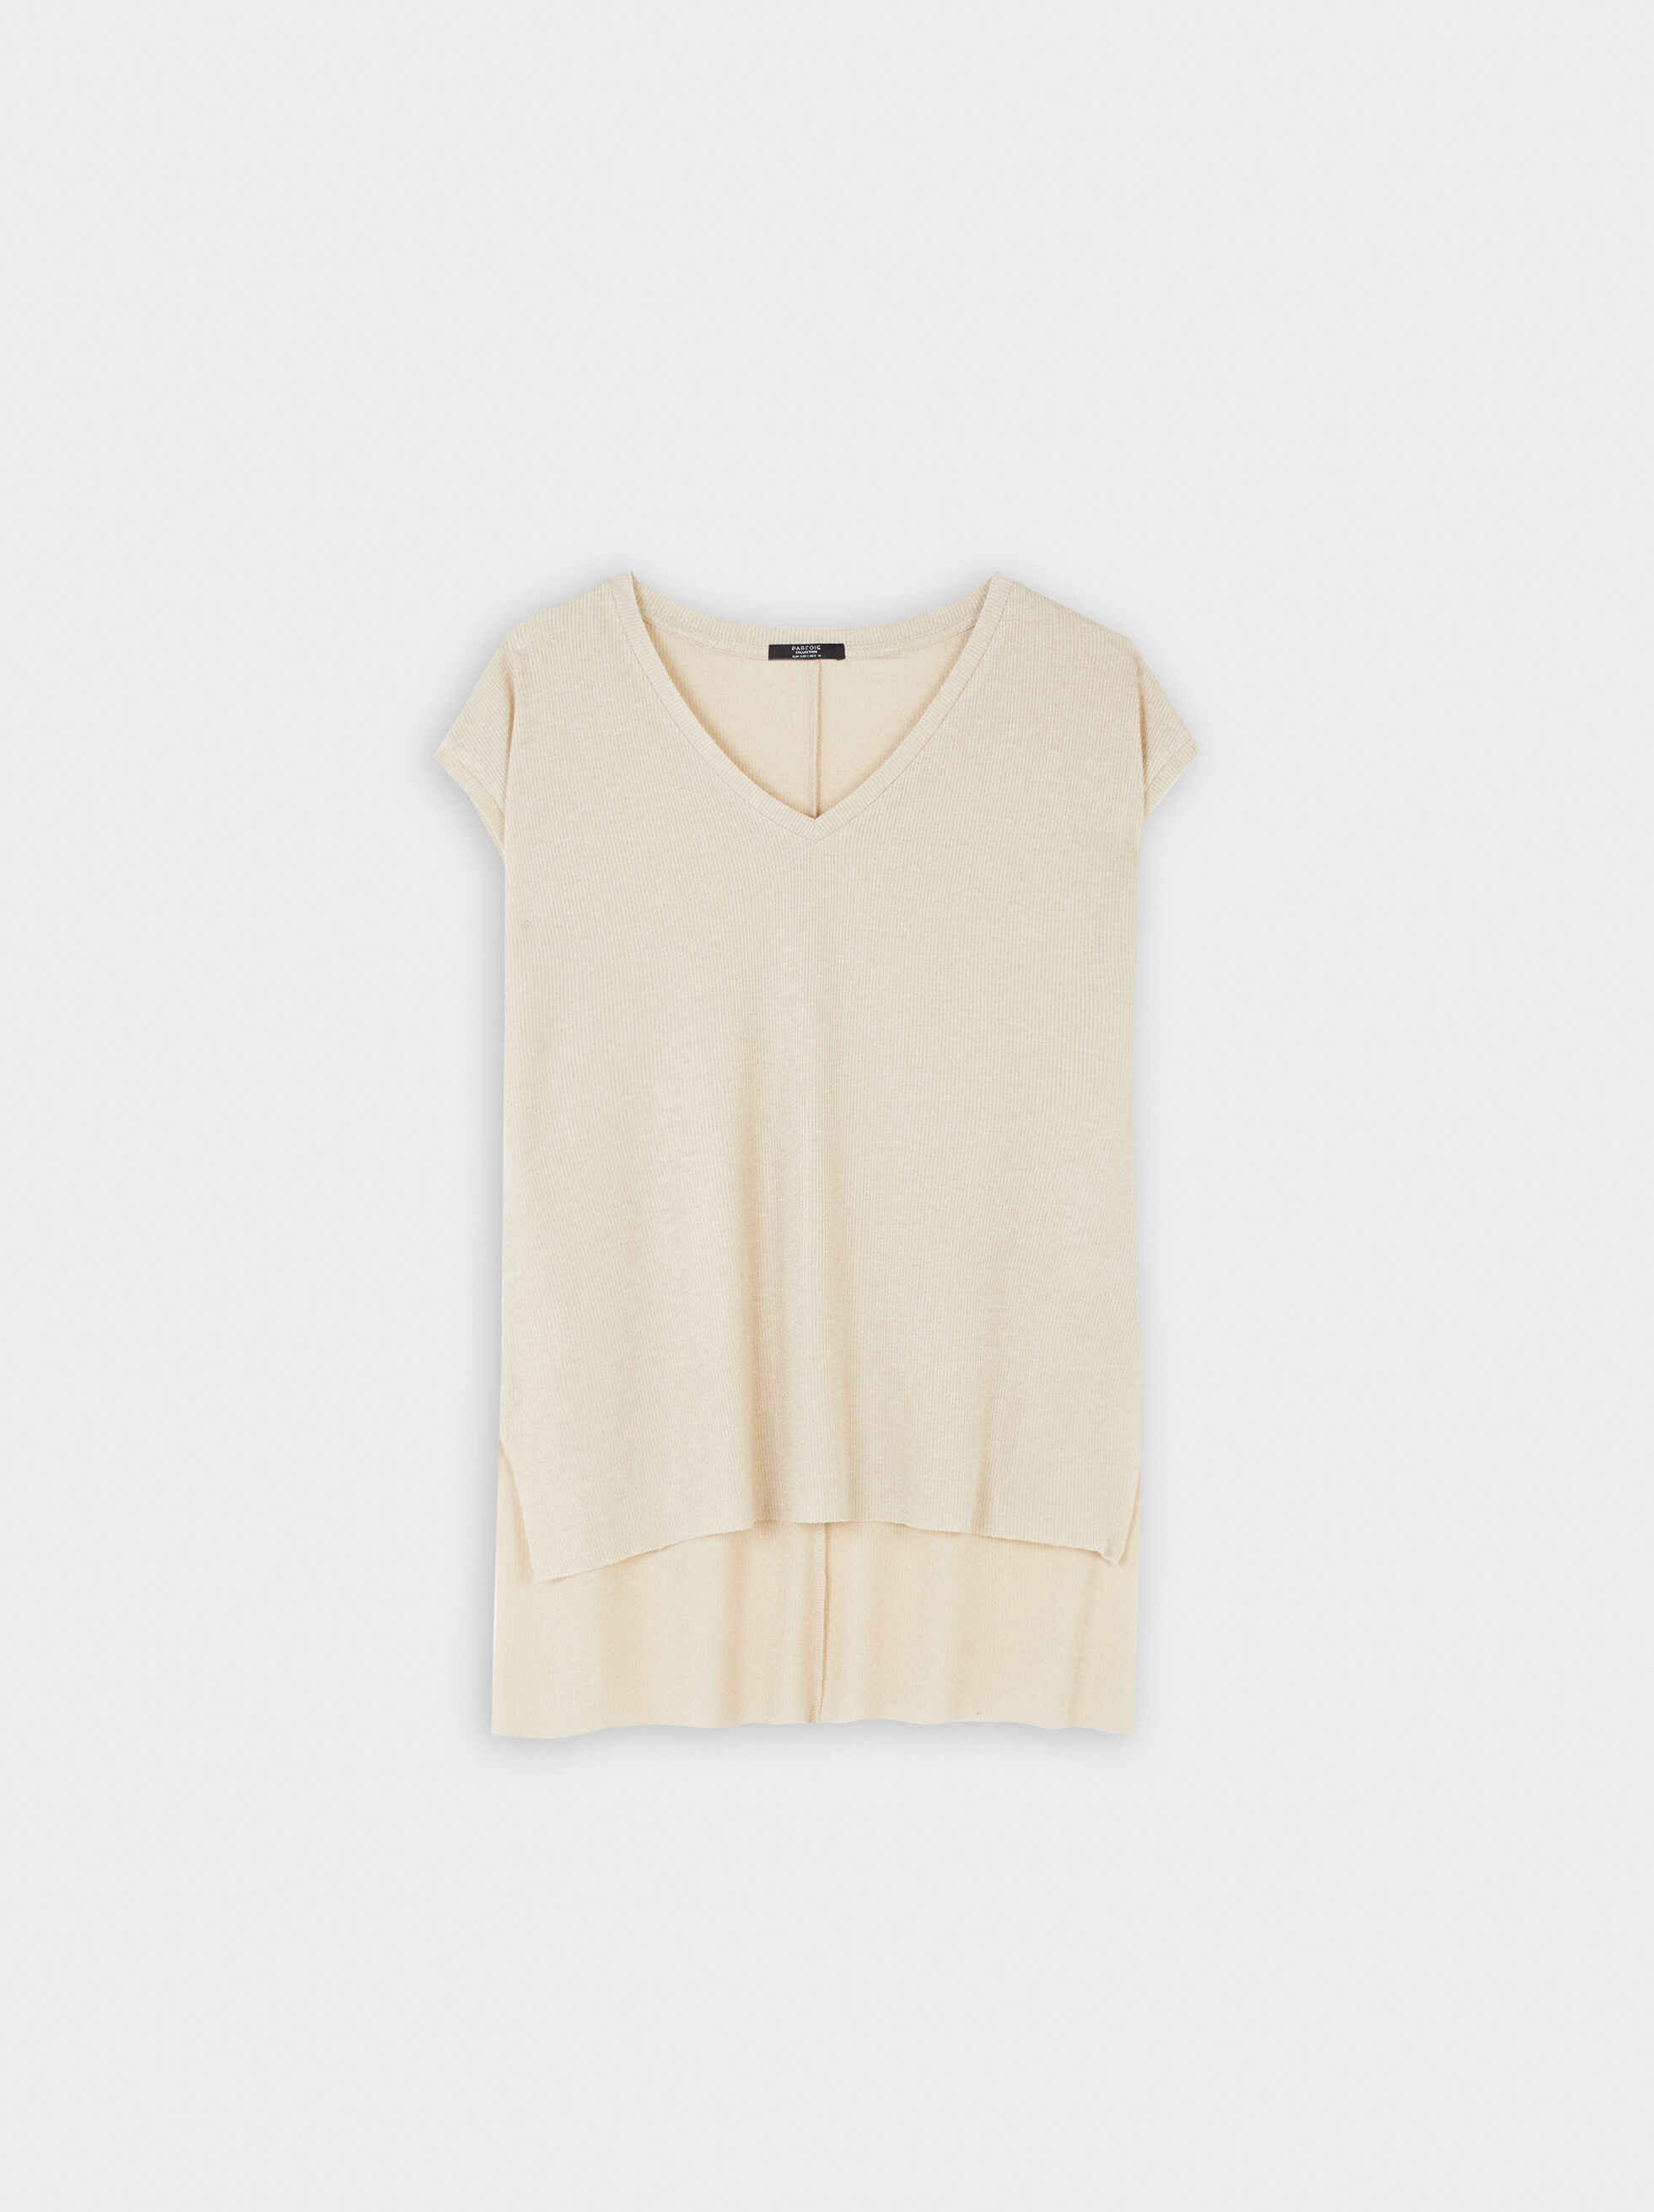 Sleeveless Top With A V-Neckline, , hi-res